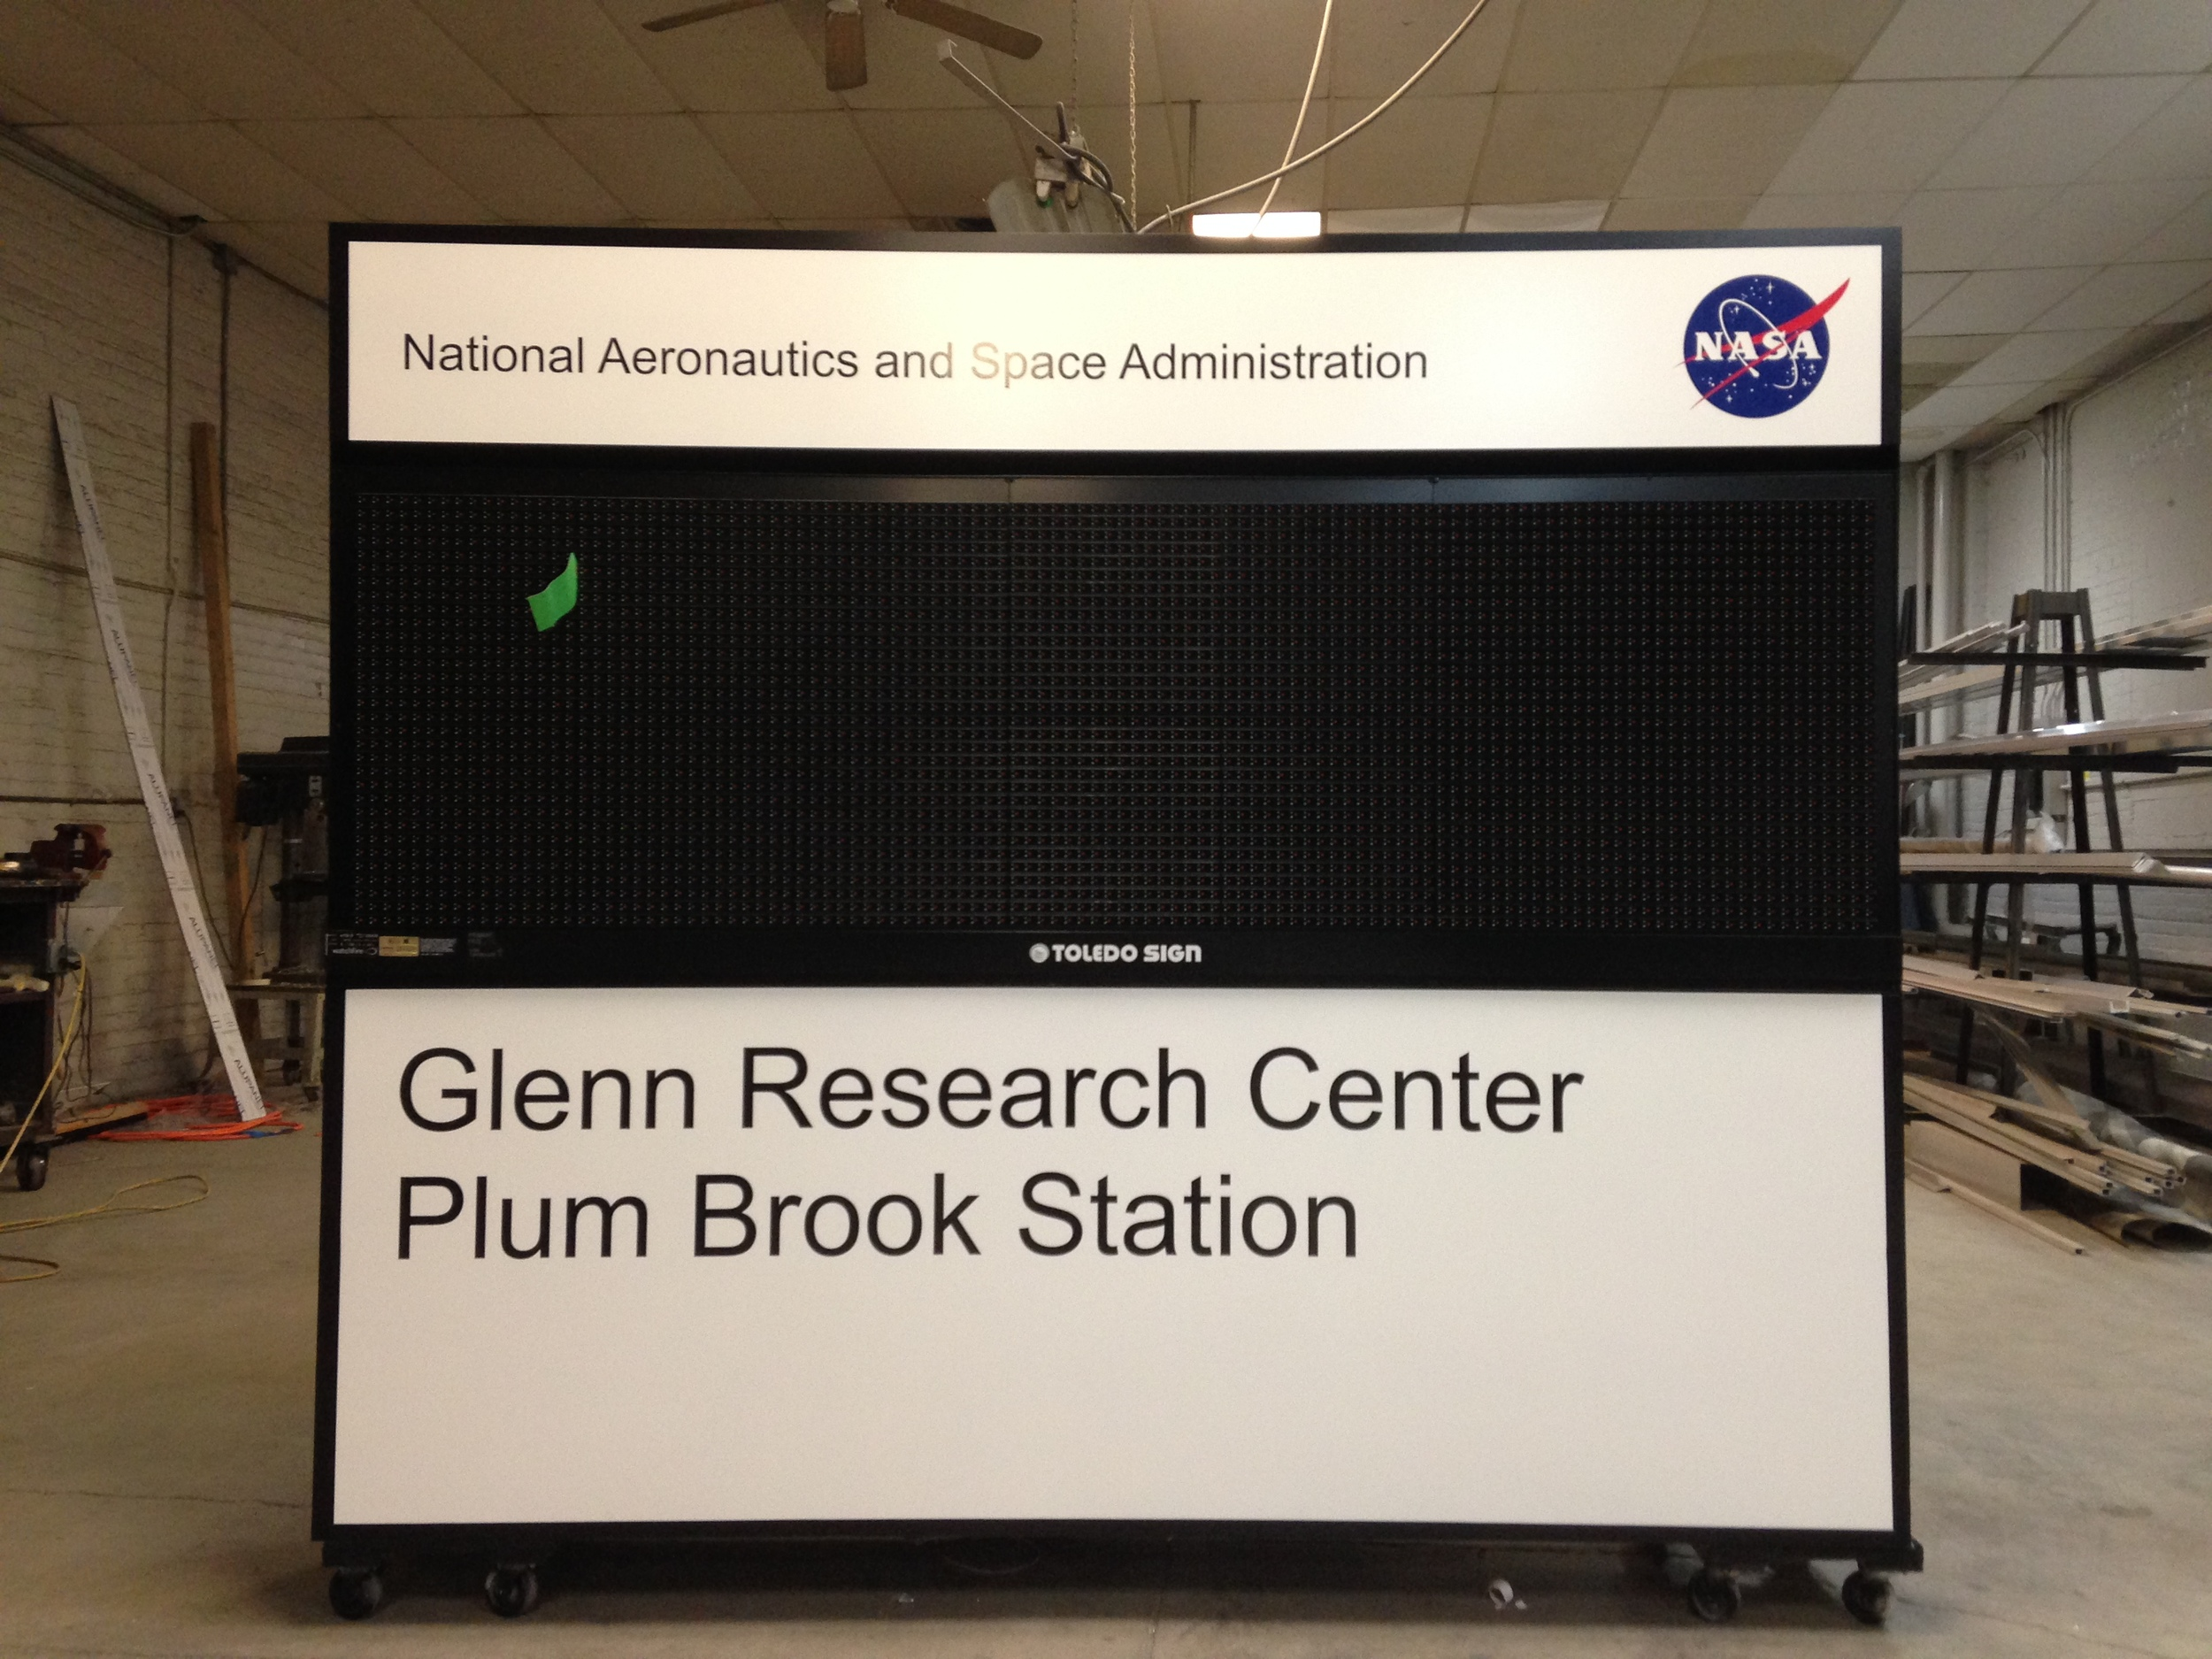 Glenn Research Center Plum Brook Station